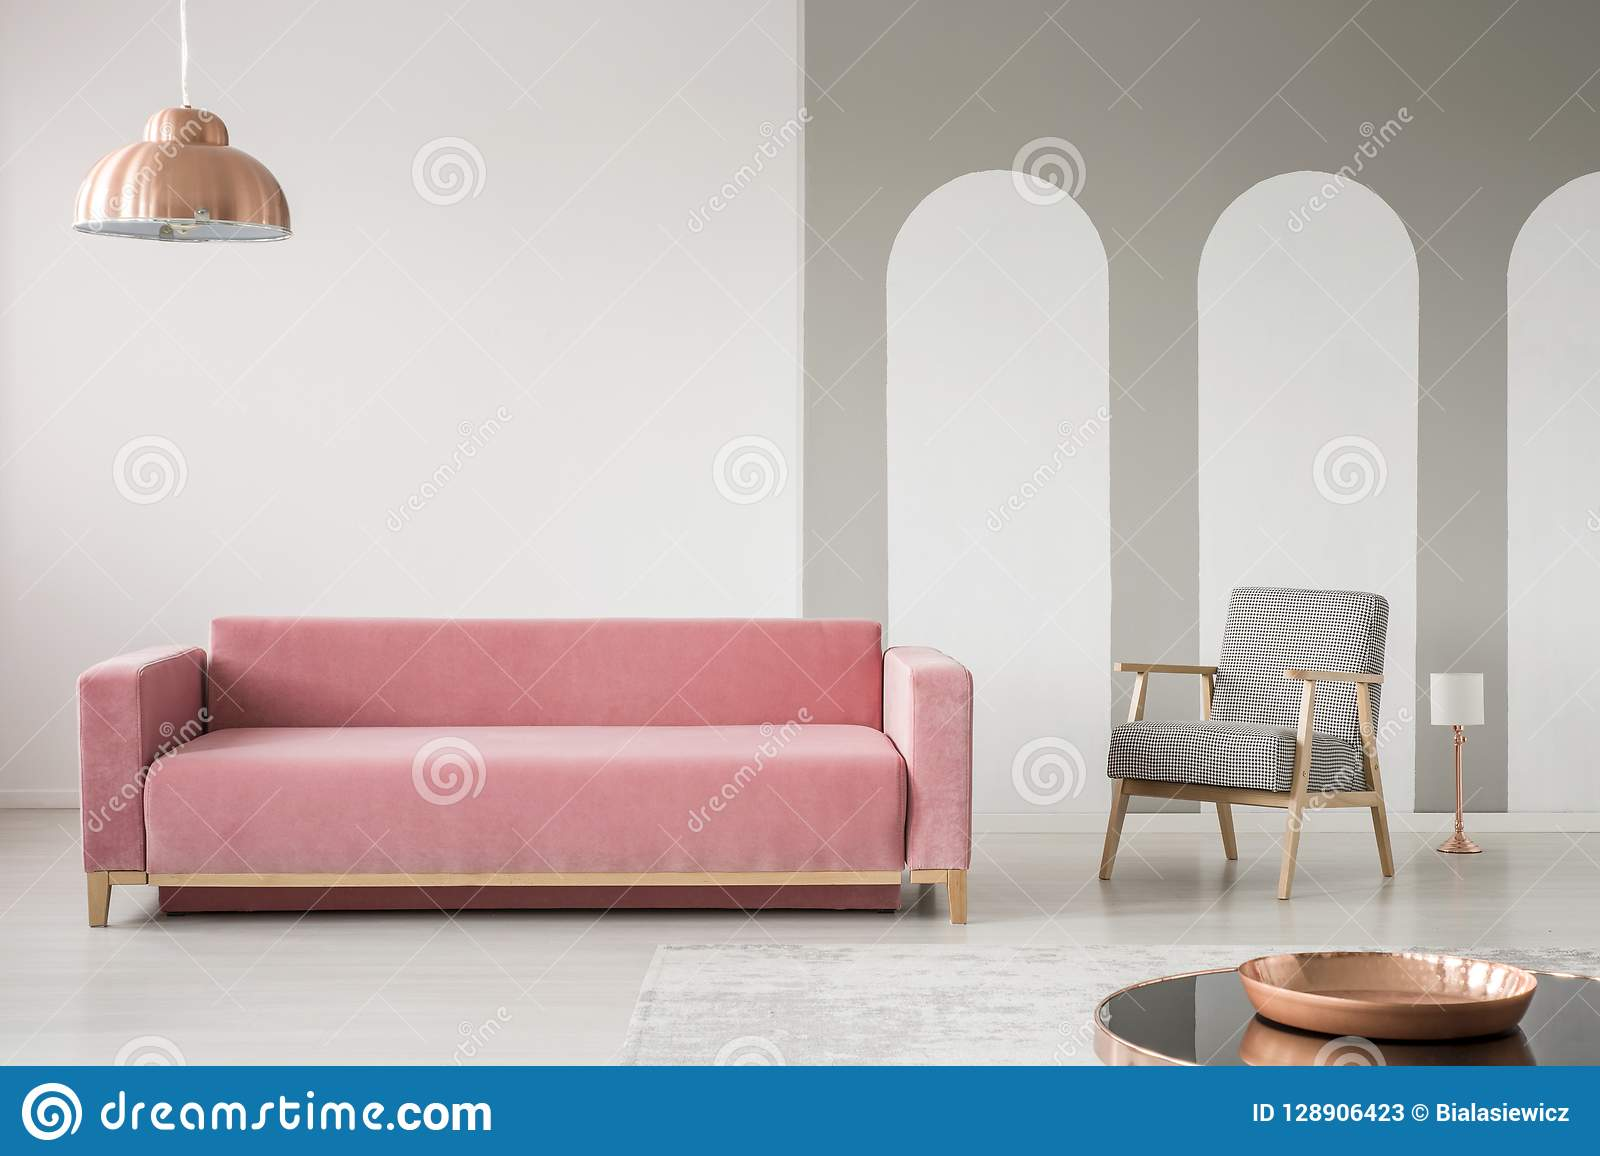 Creative Living Room Interior Decorated With Arches Pink Sofa And